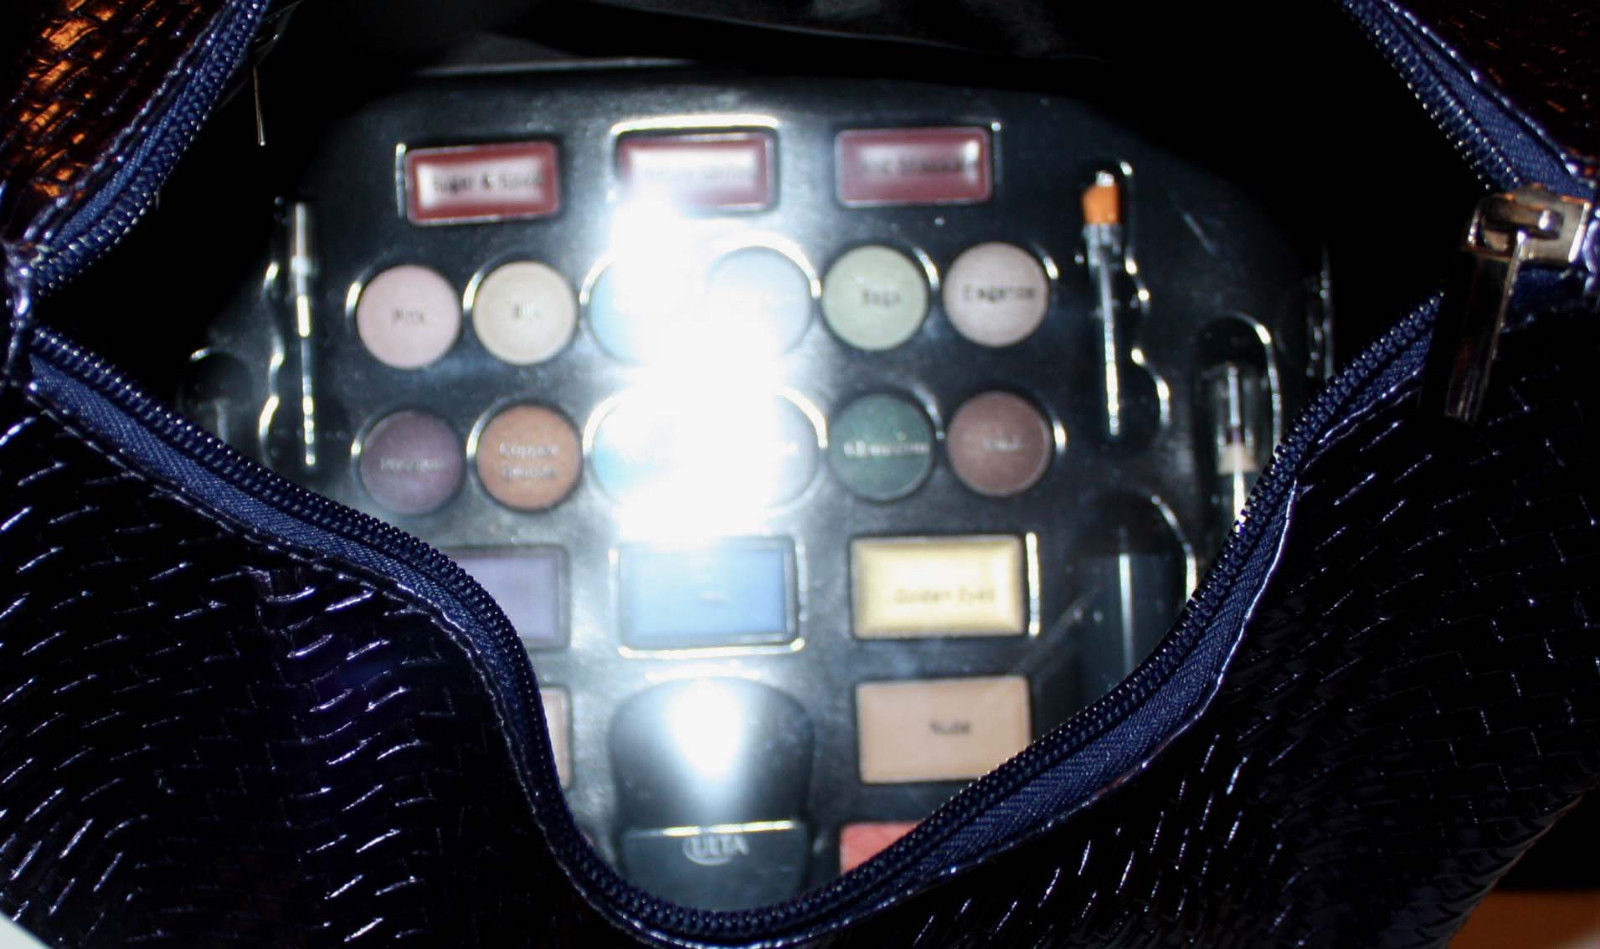 makeup palette inside upper zippered compartment